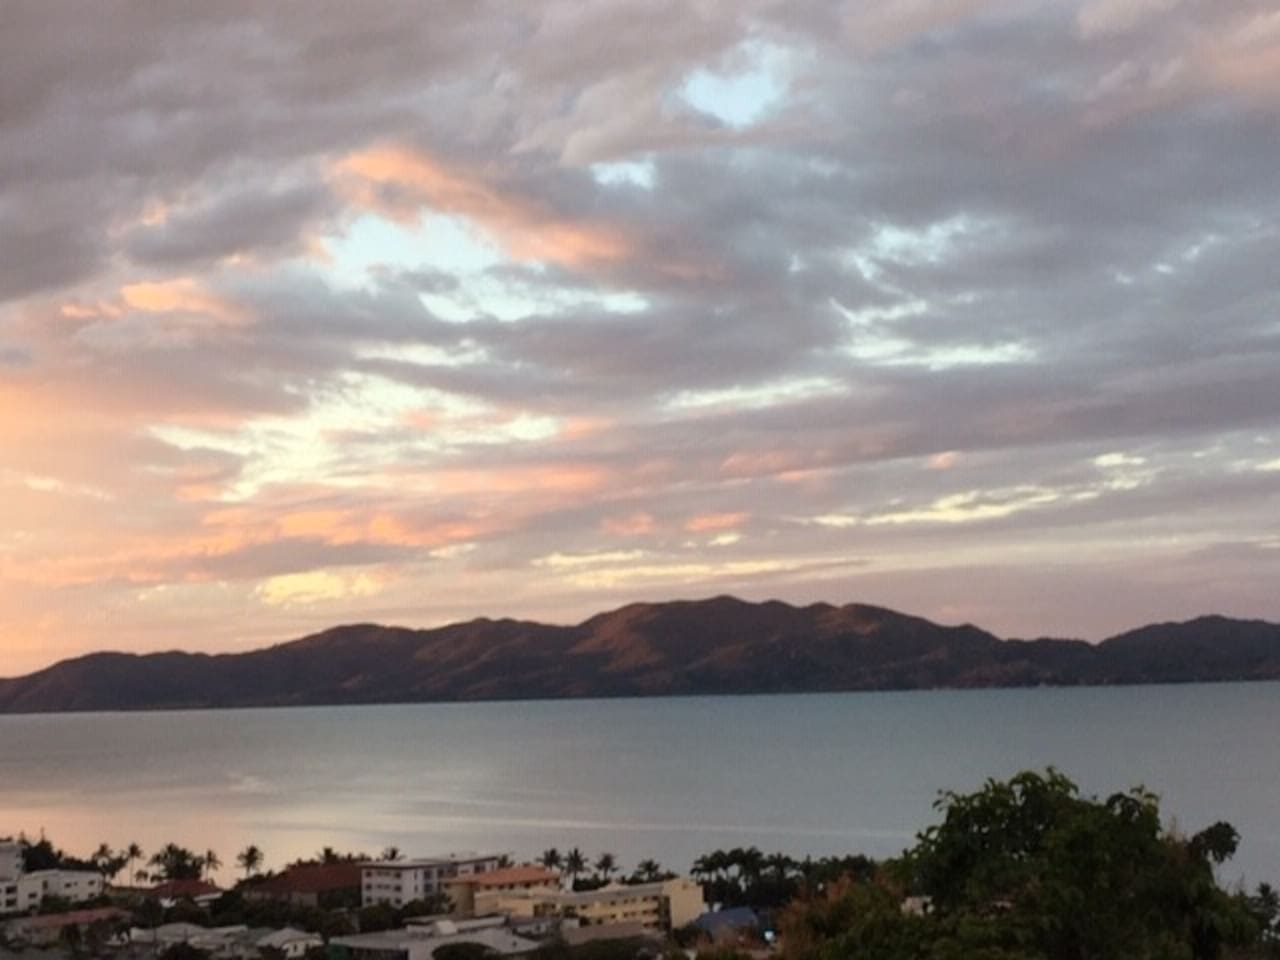 Looking to Magnetic Island from my balcony.